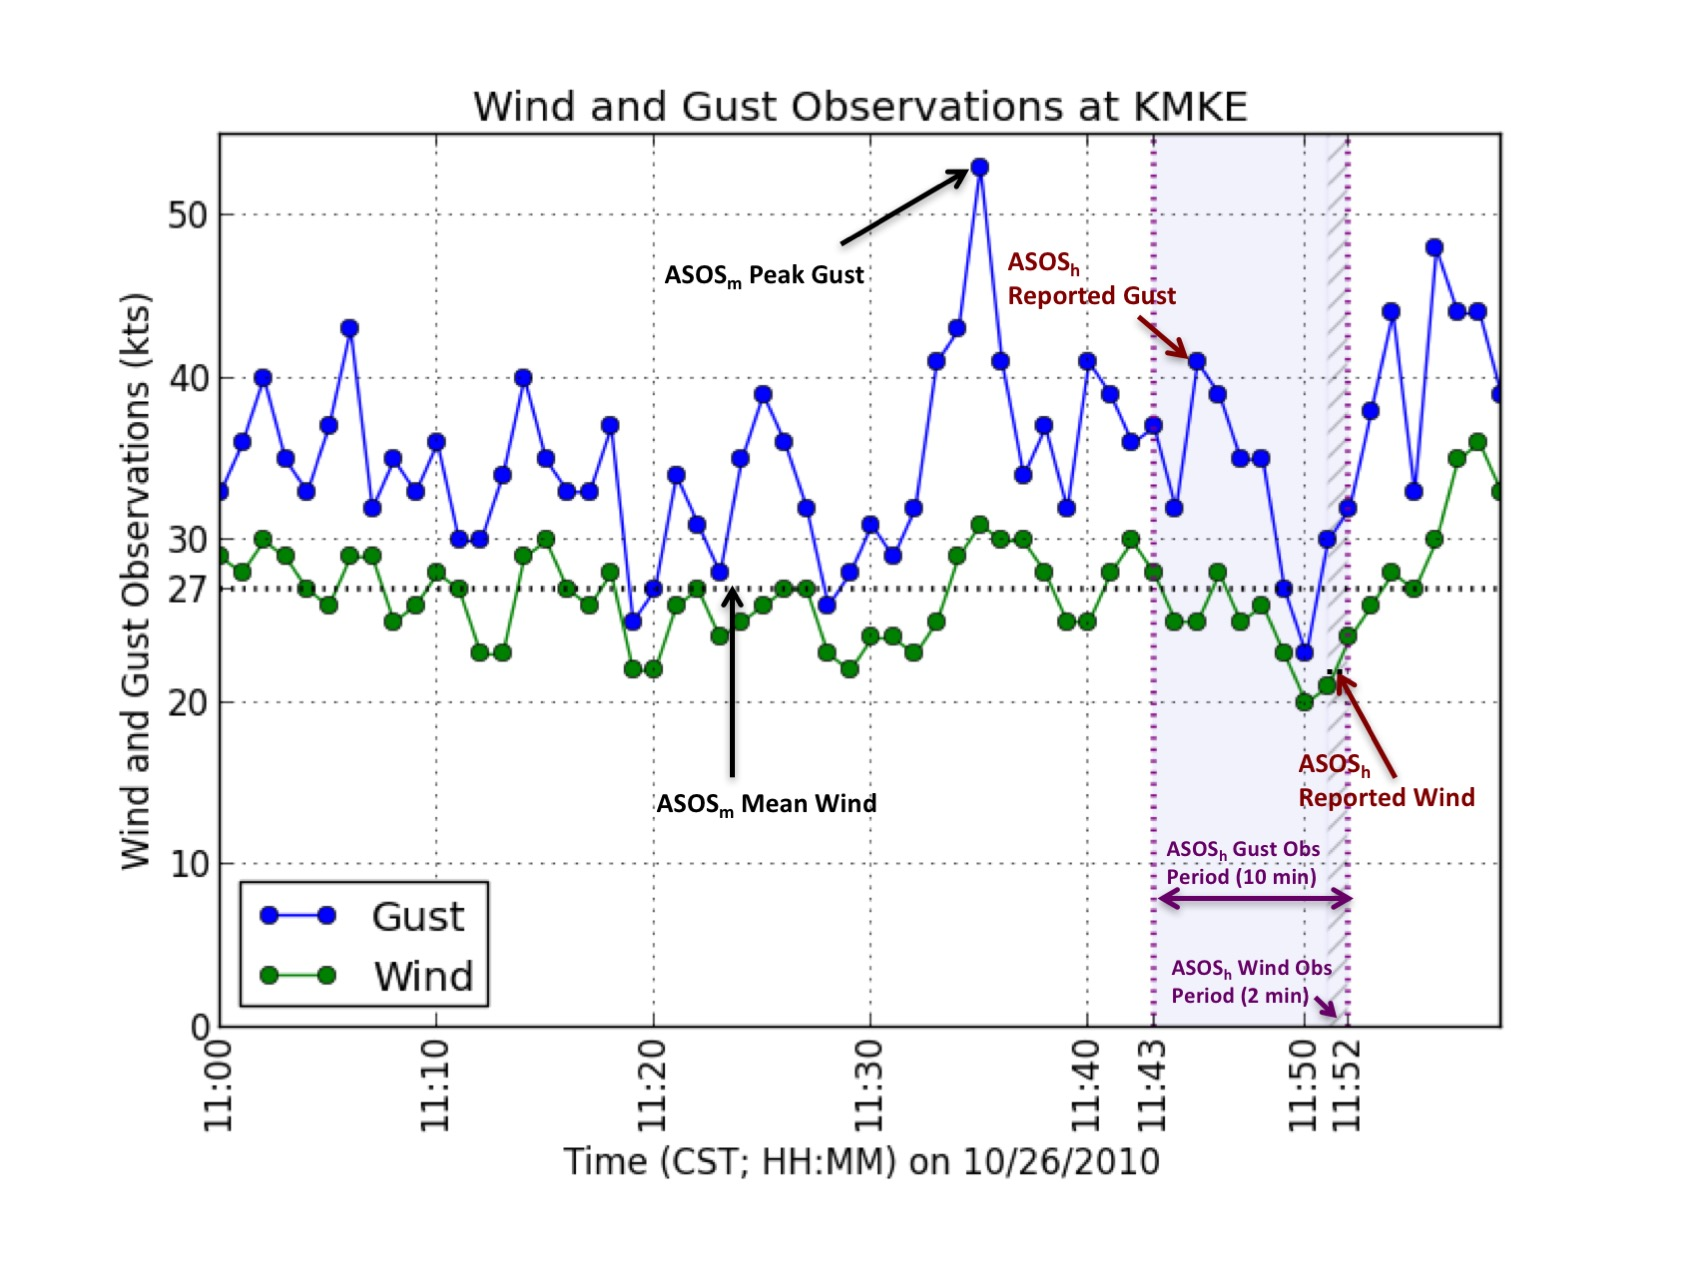 Air Pollution Meteorology Atmospheric Science Diagram One Minute Resolution Asosm Wind Green And Gust Blue Observations For Sample Hour In Milwaukee Illustrating The Effects Of Automated Surface